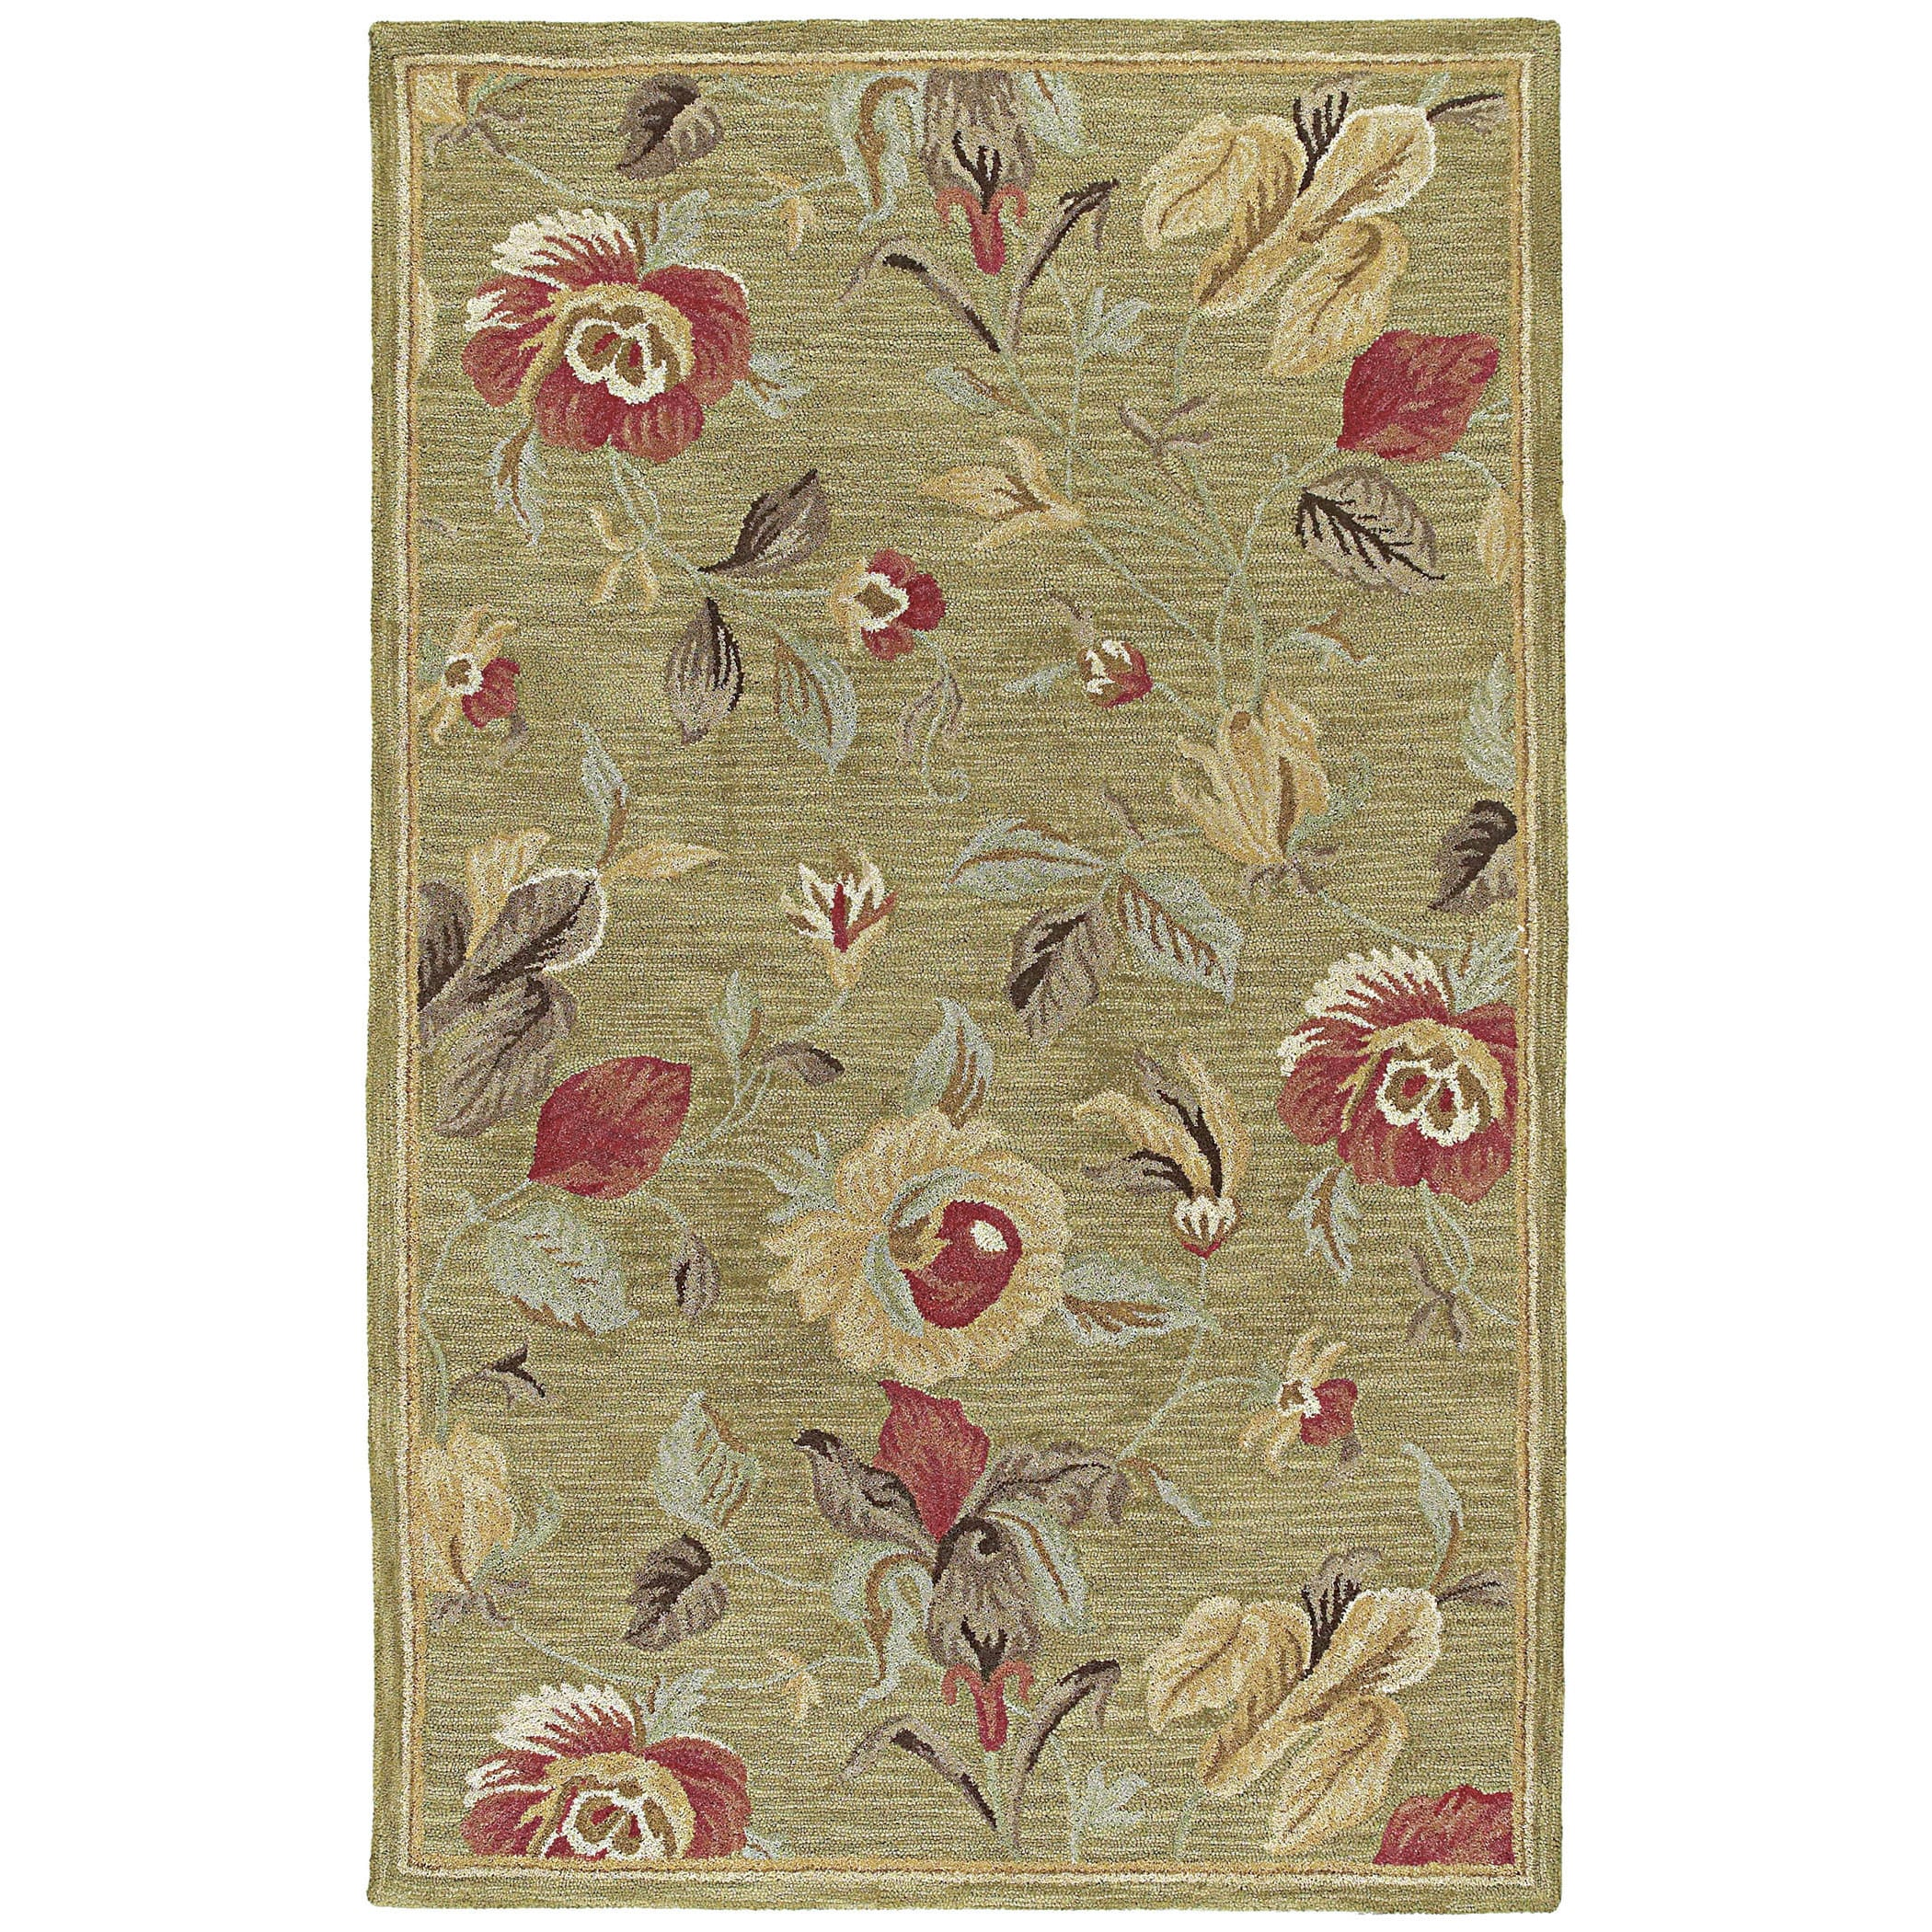 Lawrence Light Olive Floral Hand-Tufted Wool Rug (96 x 130) - 96 x 13 (Olive - 96 x 13)